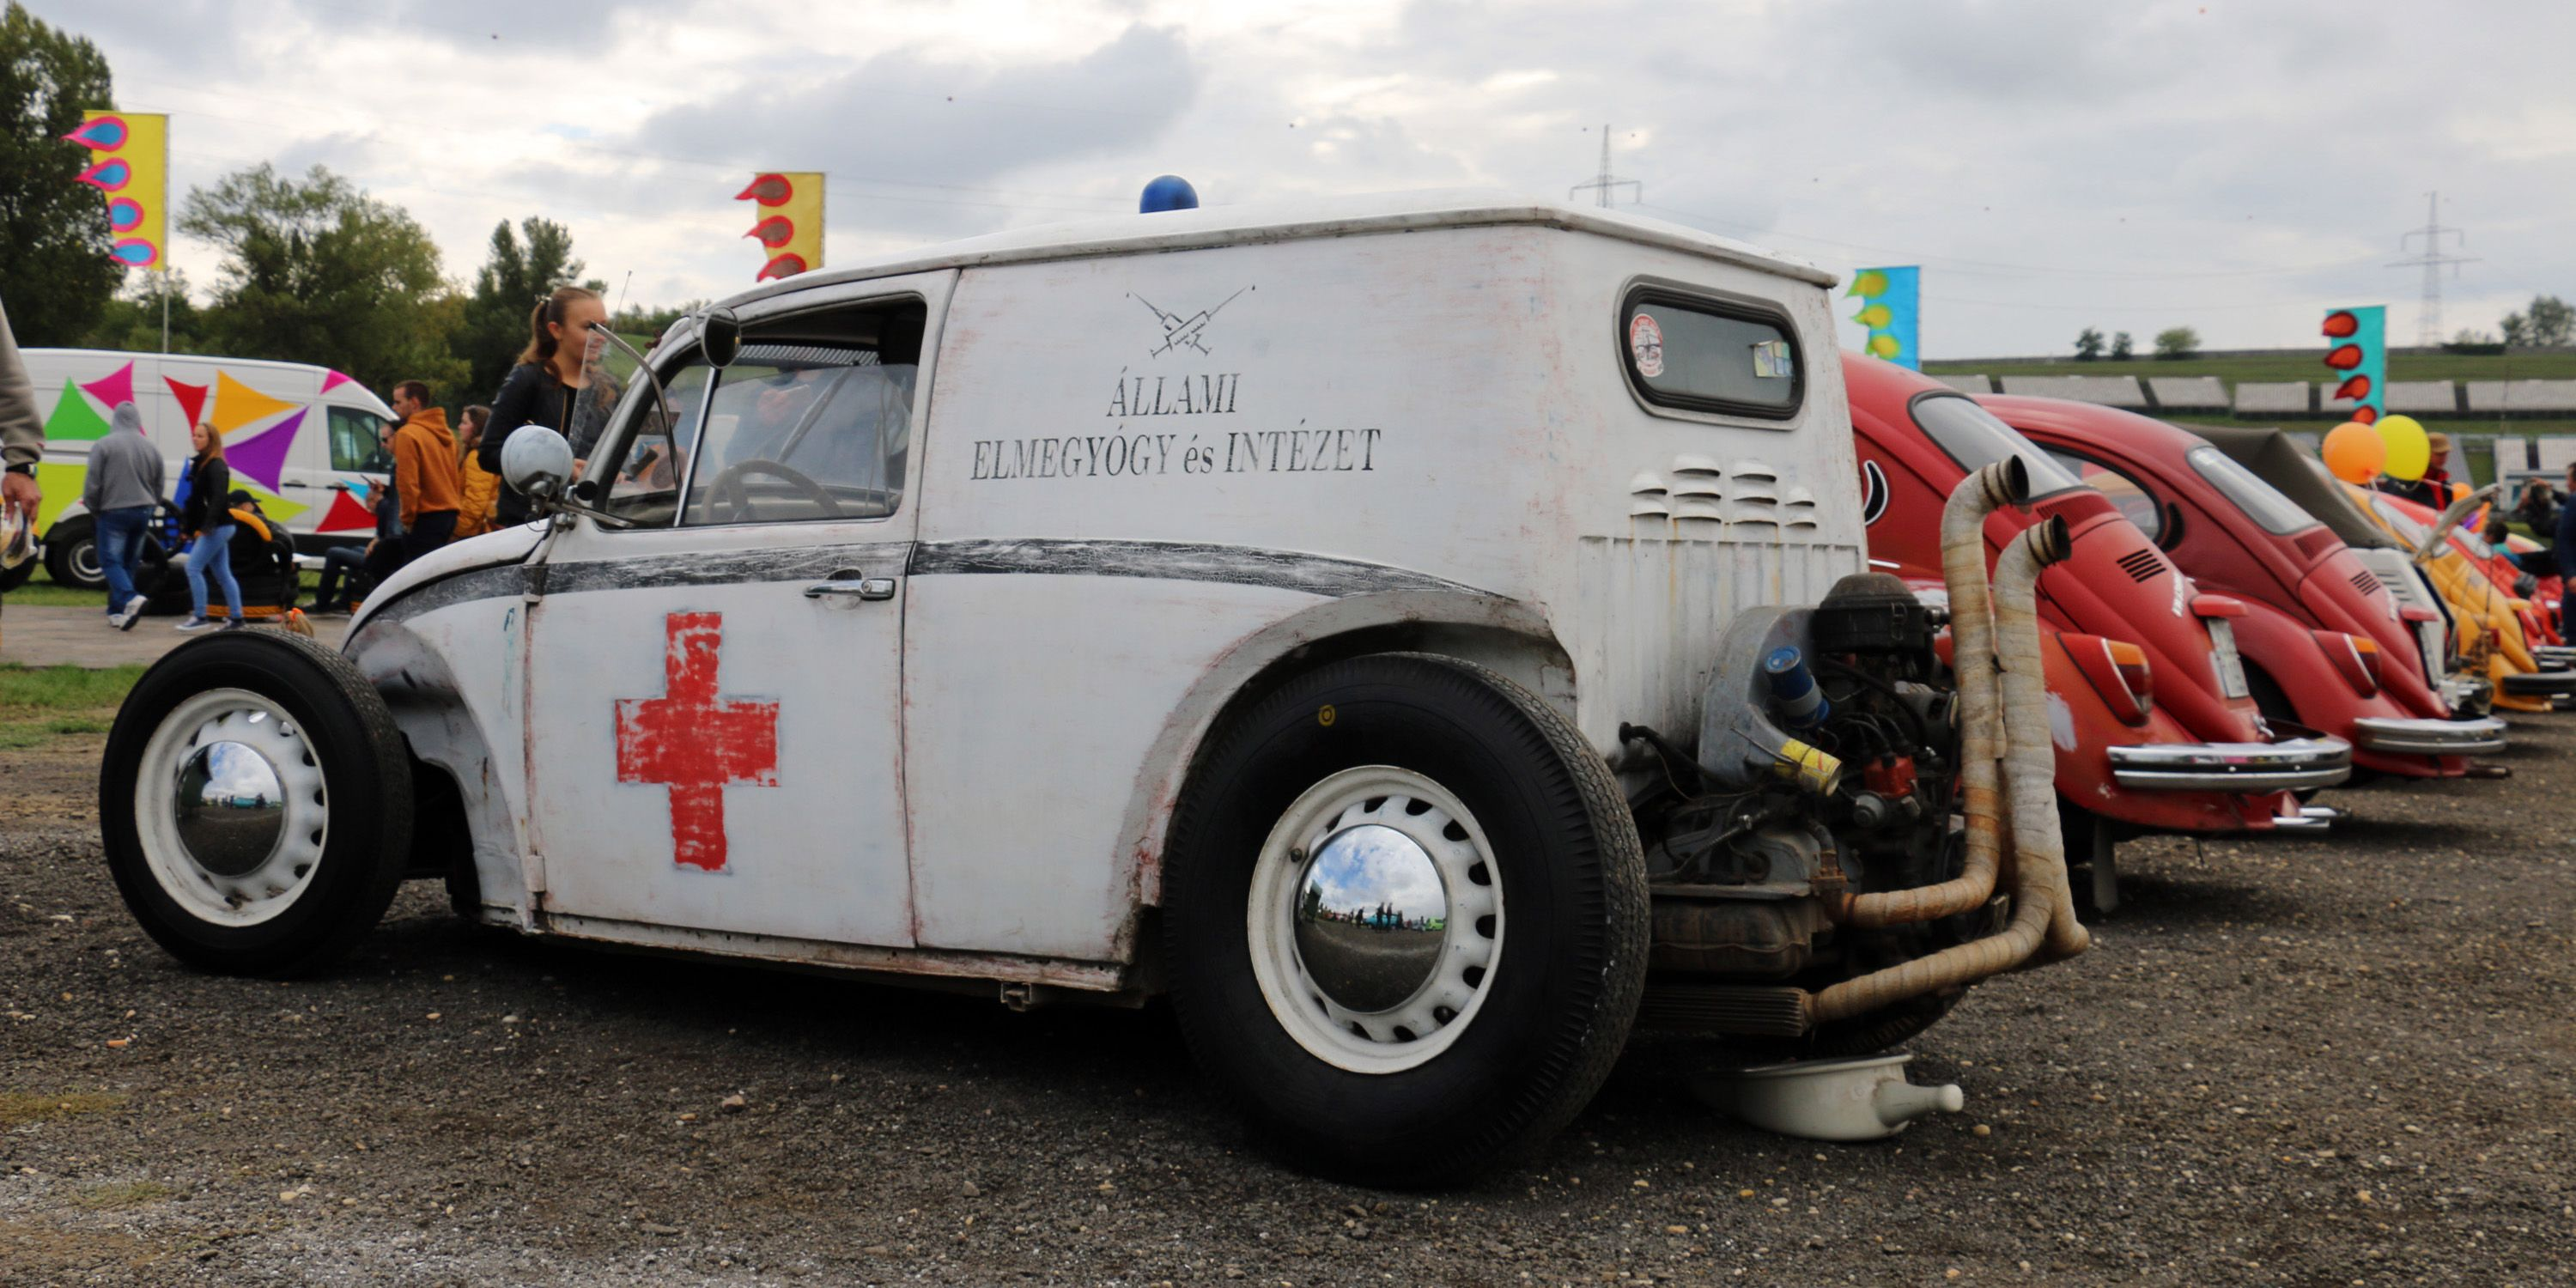 The Coolest Stuff at the VW Meet at the Hungaroring